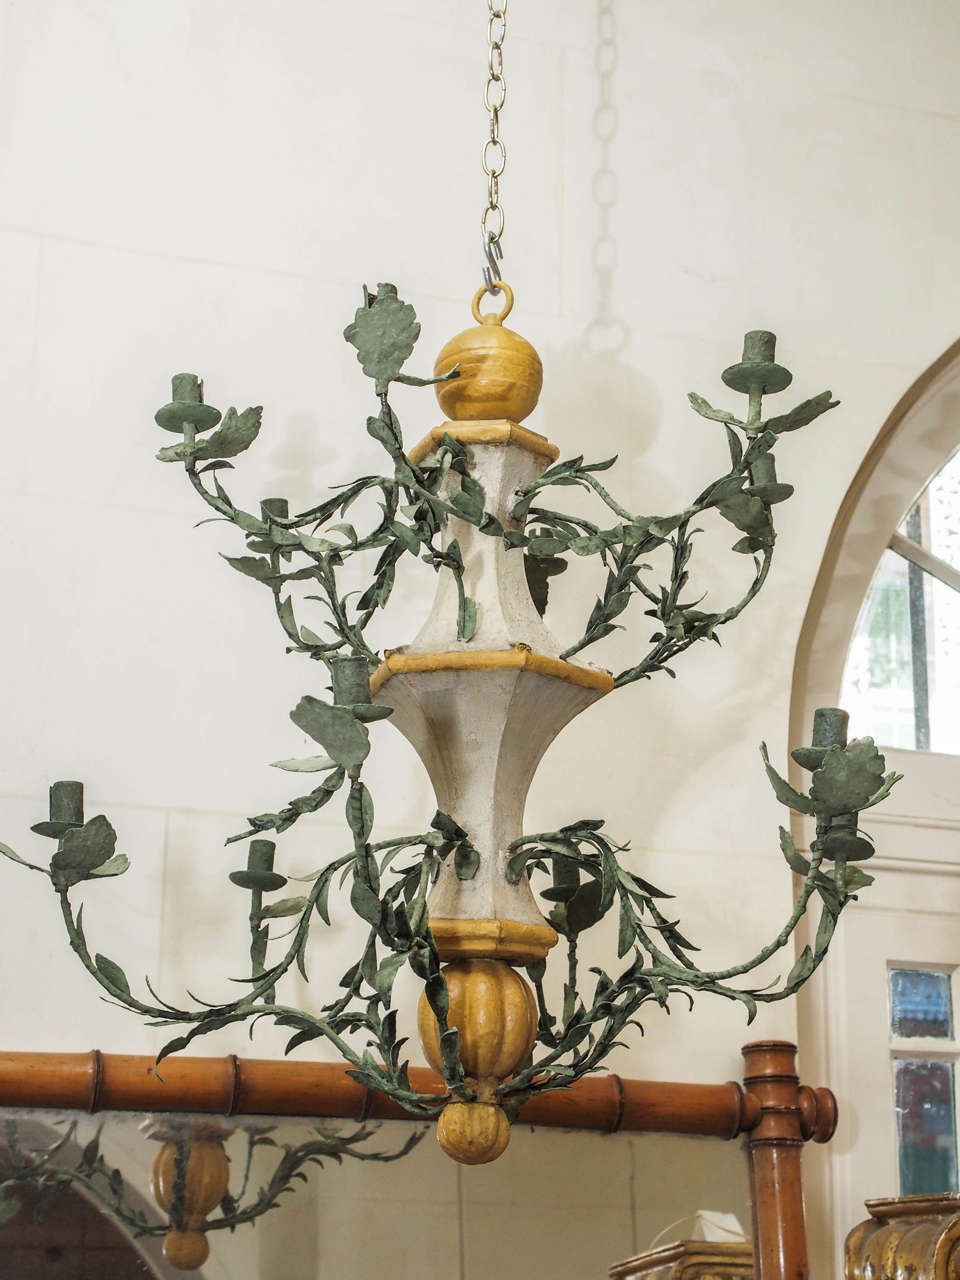 These late 18th century twelve-light l'orangerie chandeliers from the south of France have been meticulously restored. The stems and leaves are tole; it is not electrified.